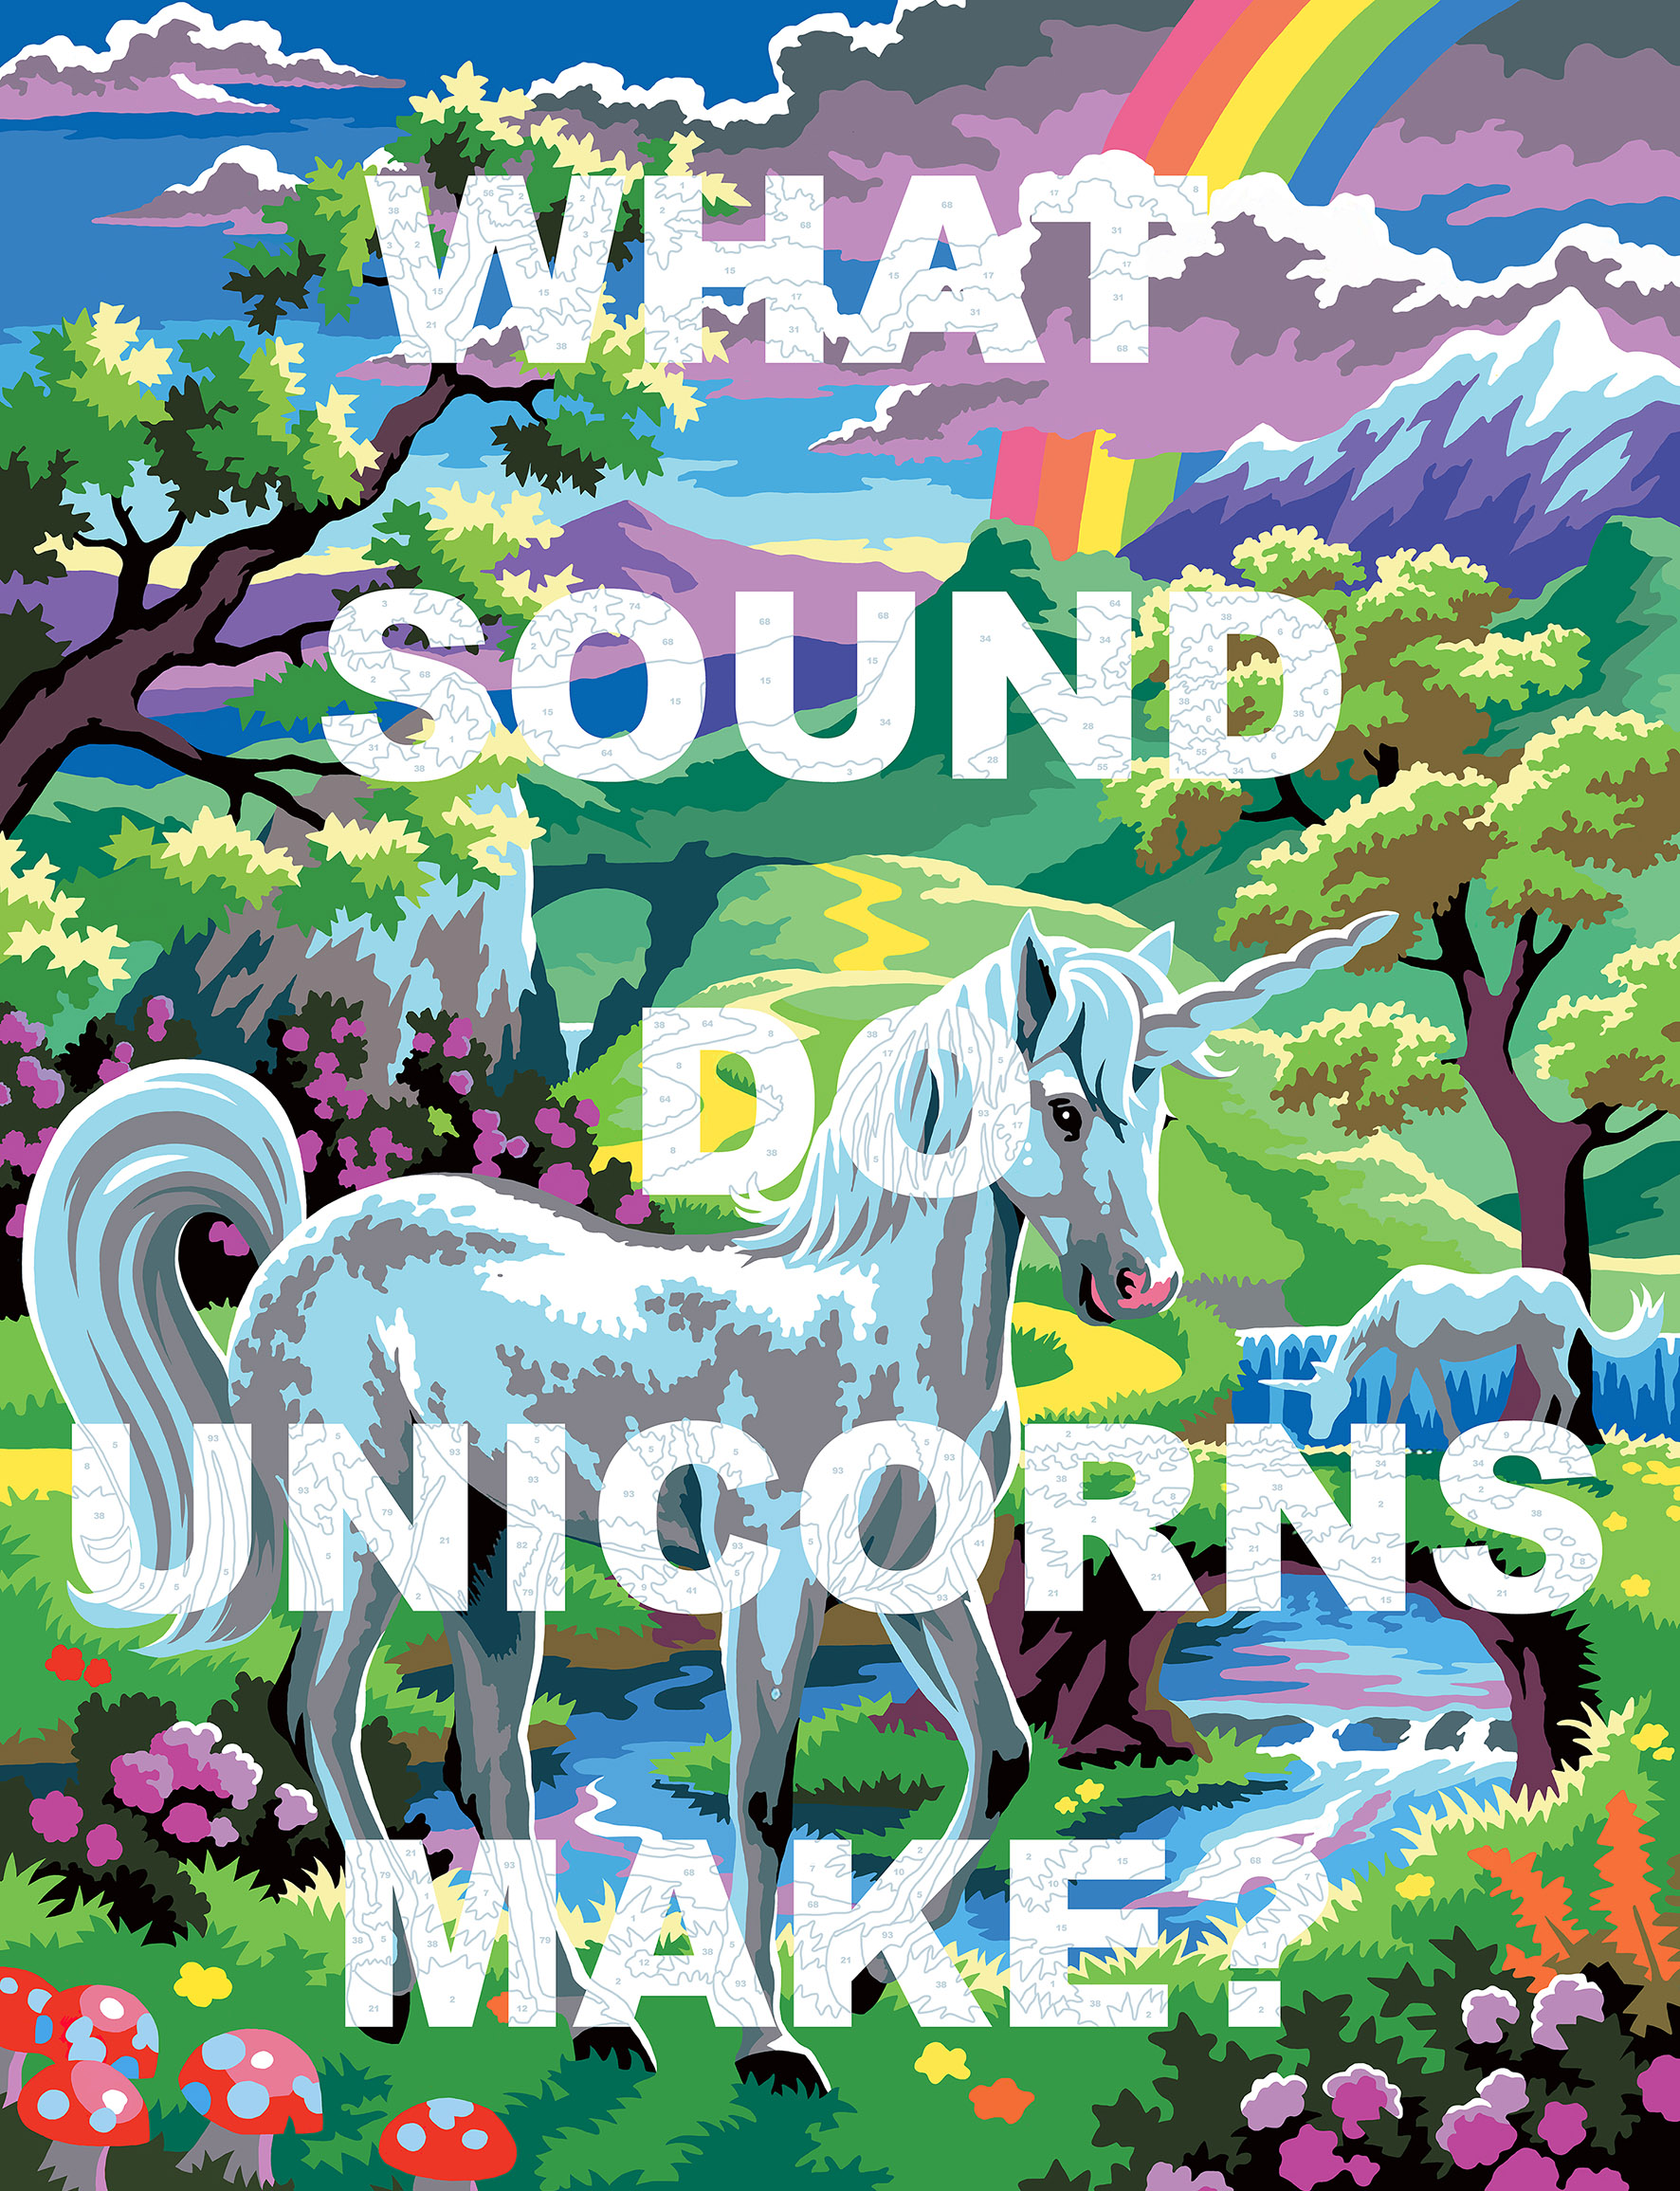 What Sound Do Unicorns Make?   Enamel gloss paint on canvas  100 x 130 cm   2018  This image is also available as a limited edition print. Please visit the website's shop for more information.